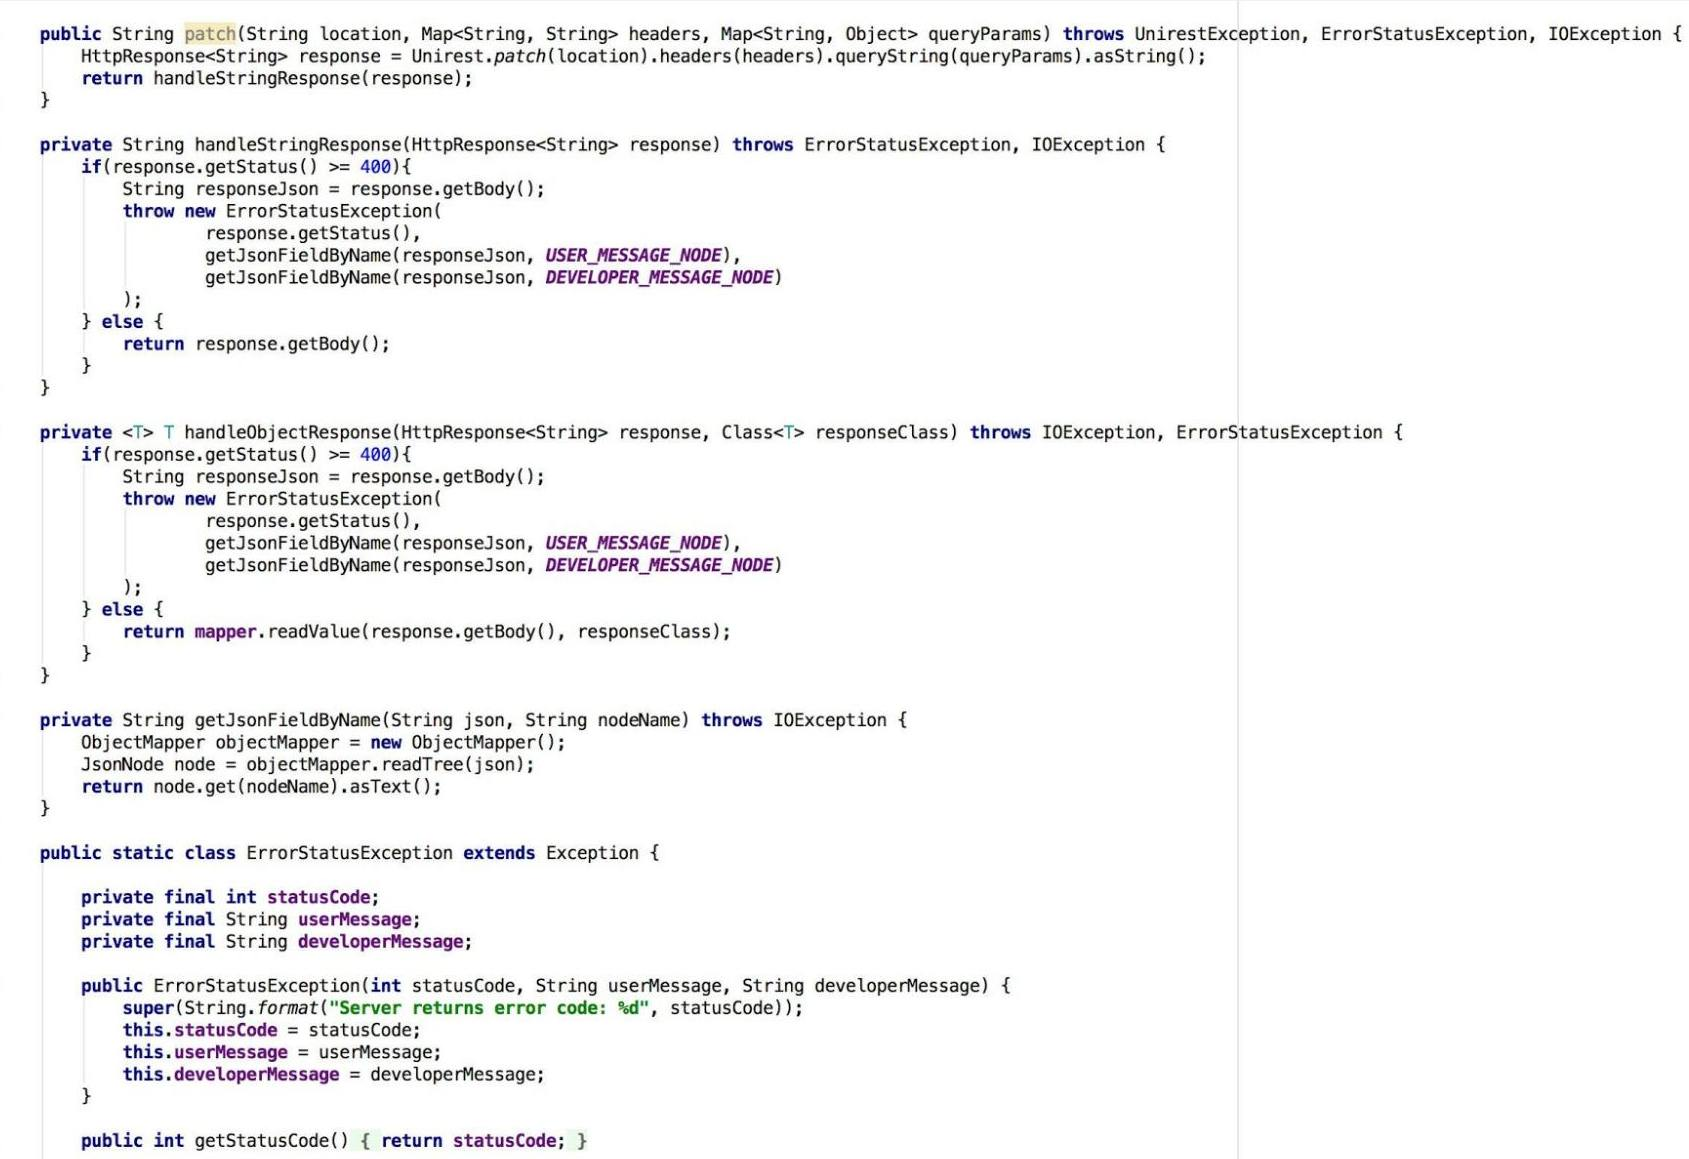 Example of сlass, designed to convert the data to java objects.